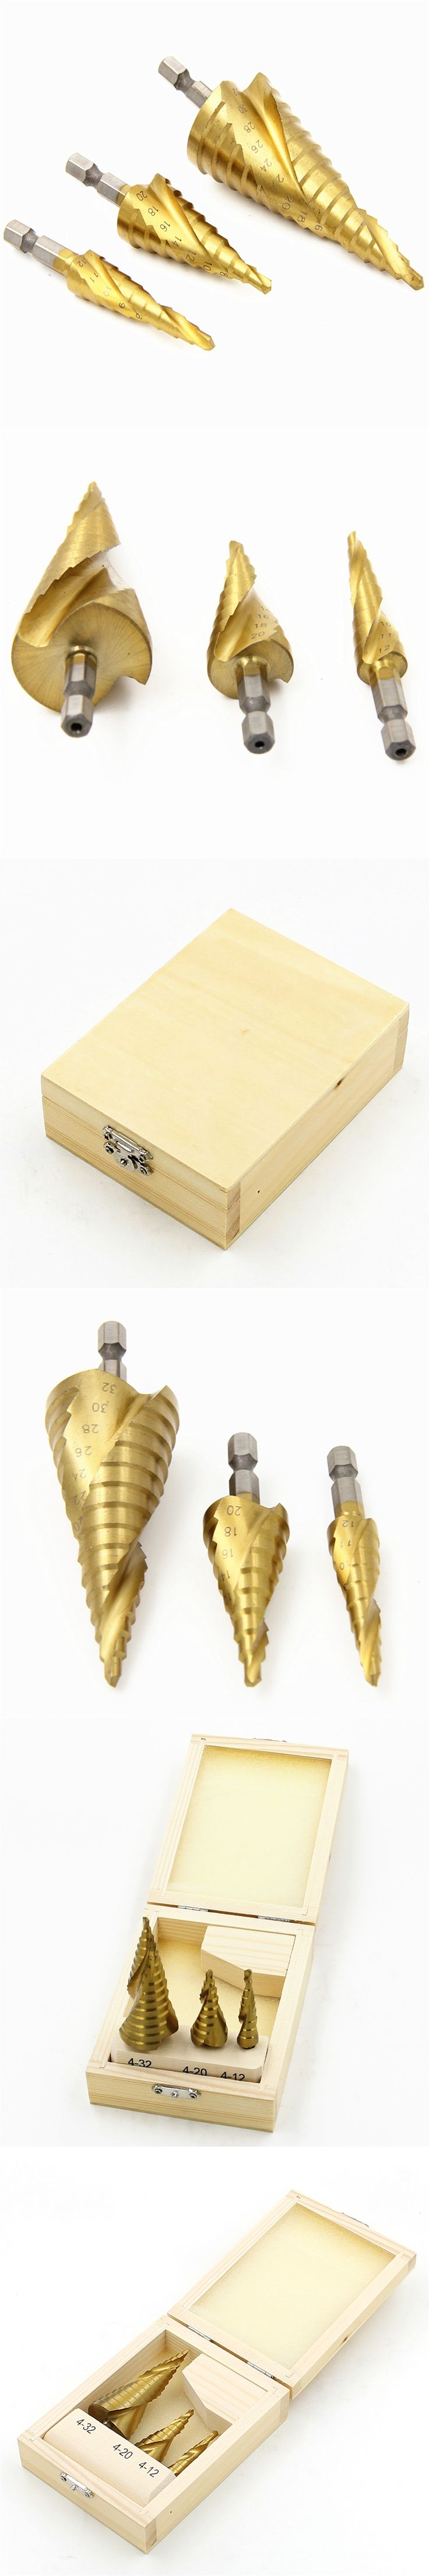 Wooden box packing 3pcs HSS Spiral Grooved Core Cone Step Drill Bits 1/4 Hex Shank 4mm to 12mm 20mm 32mm Chamfer Hole Cut Cutter